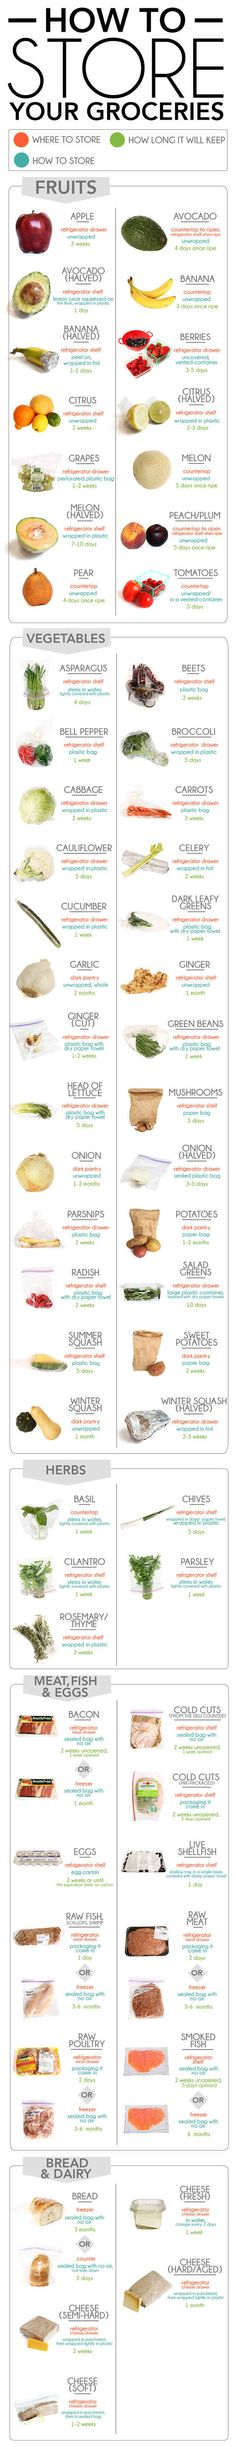 How To Store Your Groceries. I need this printed to put inside my kitchen cupboard!